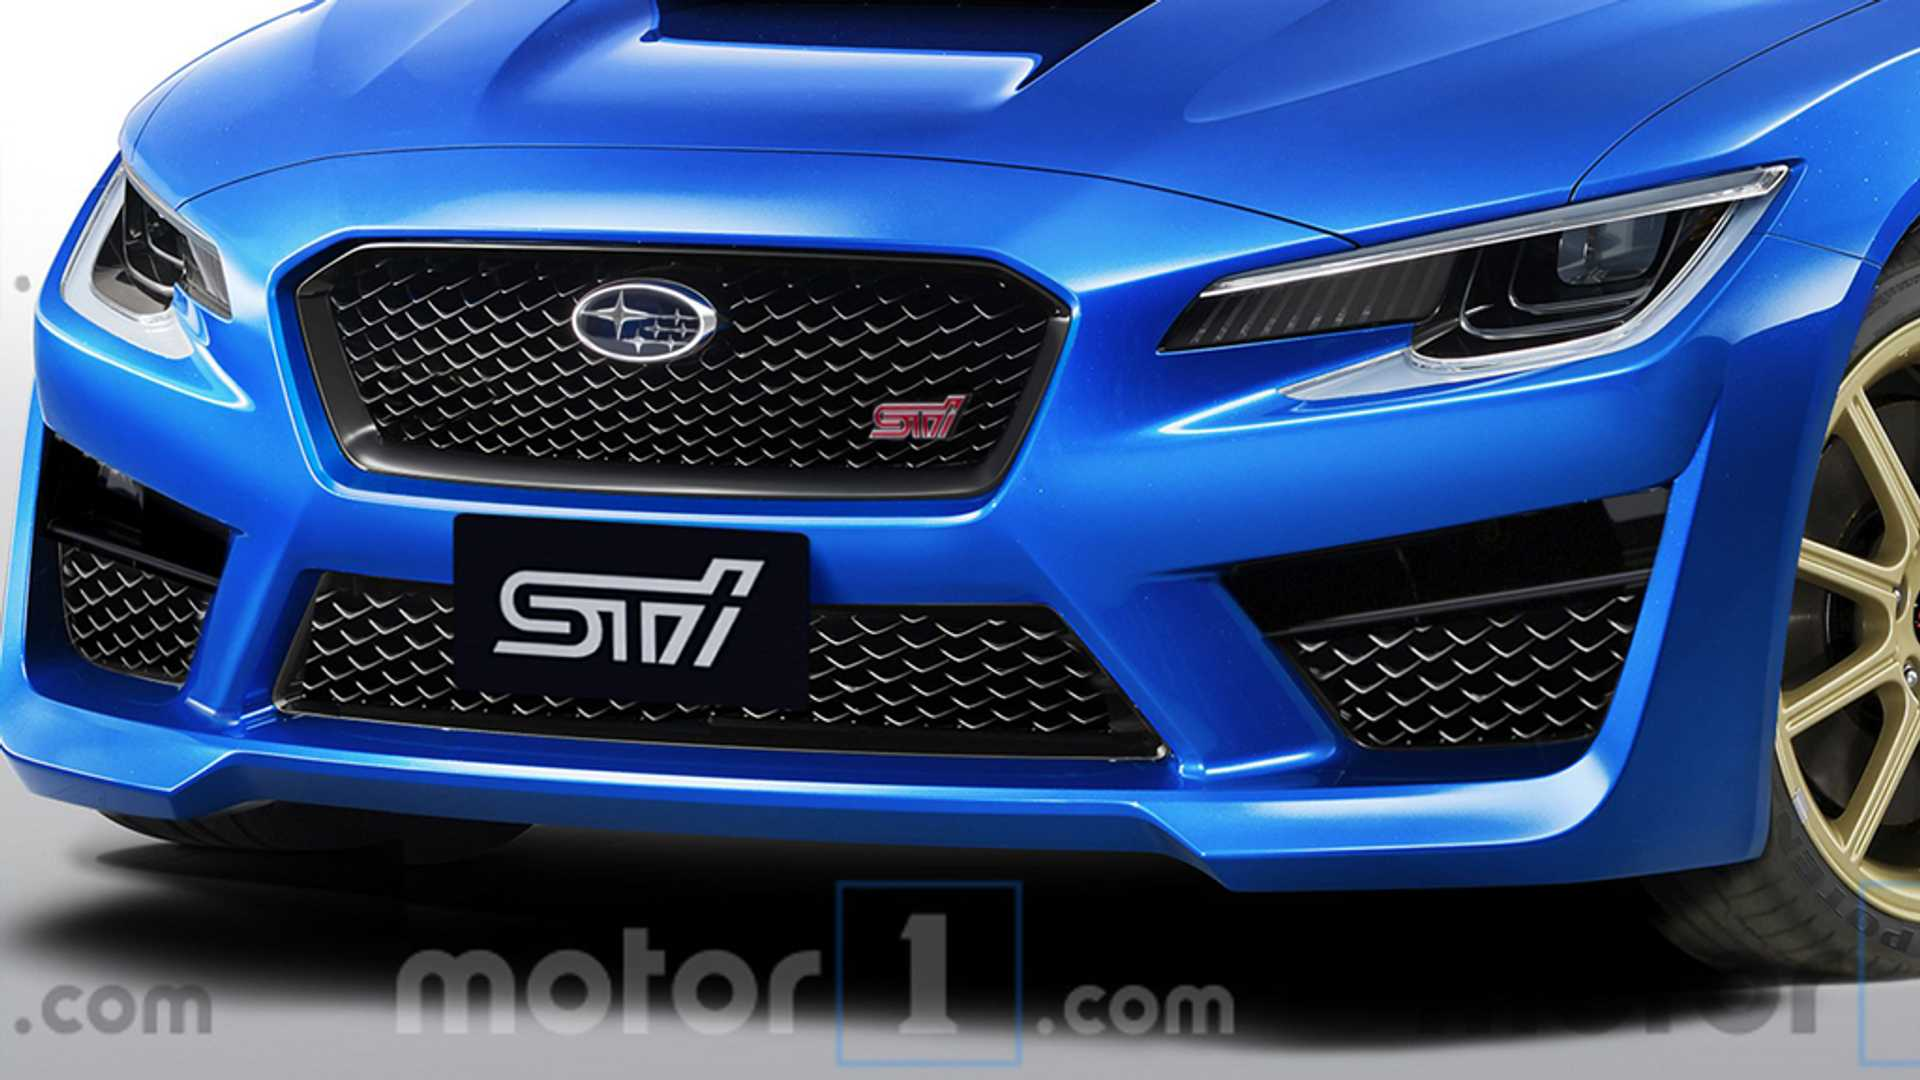 47 Great 2020 Subaru Sti Engine History by 2020 Subaru Sti Engine